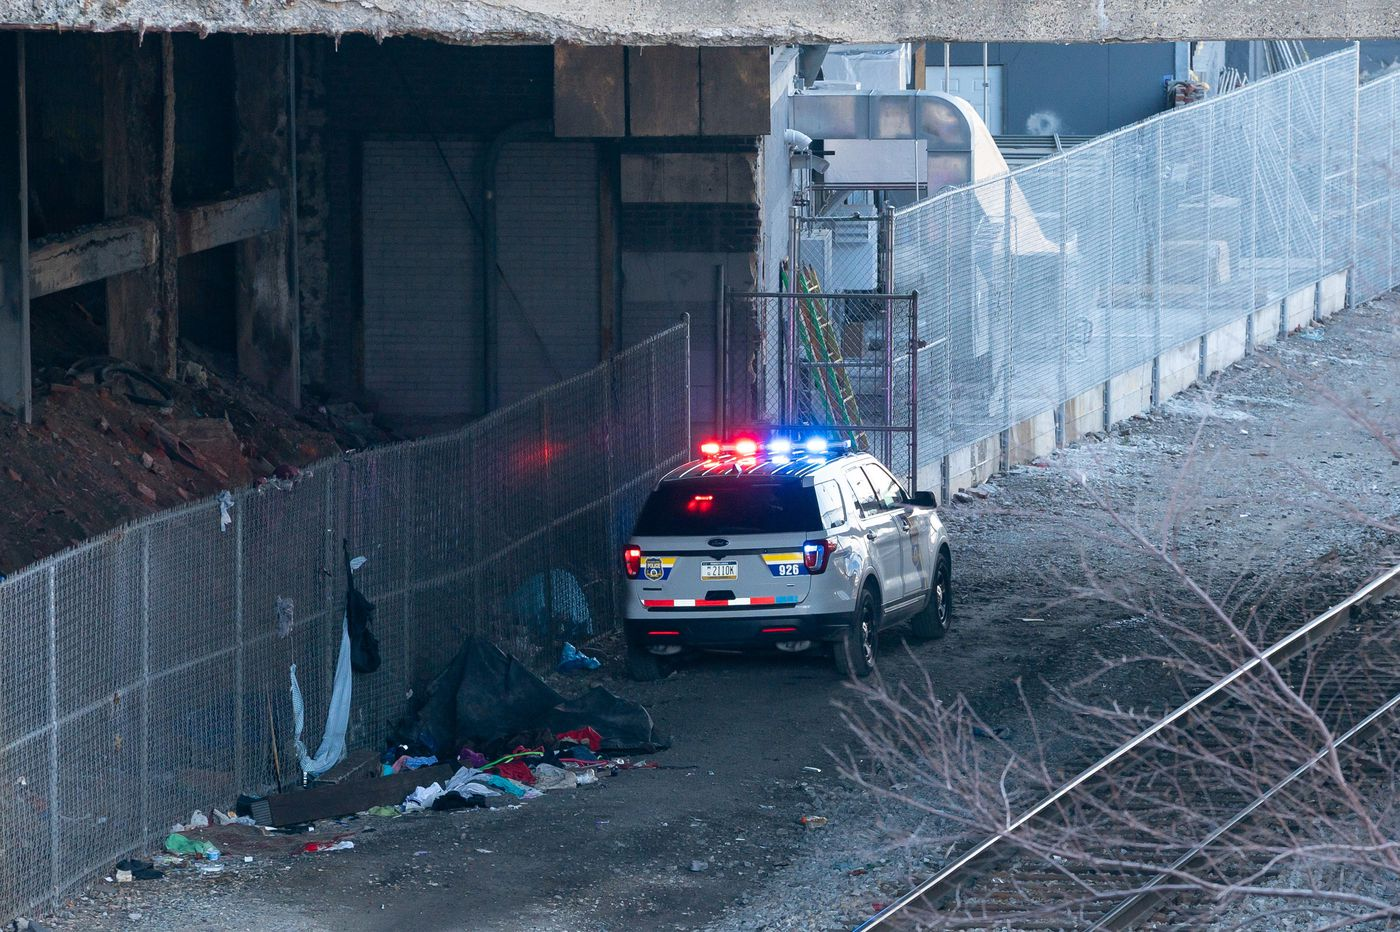 Skeletal remains found near Schuylkill River Trail in Center City